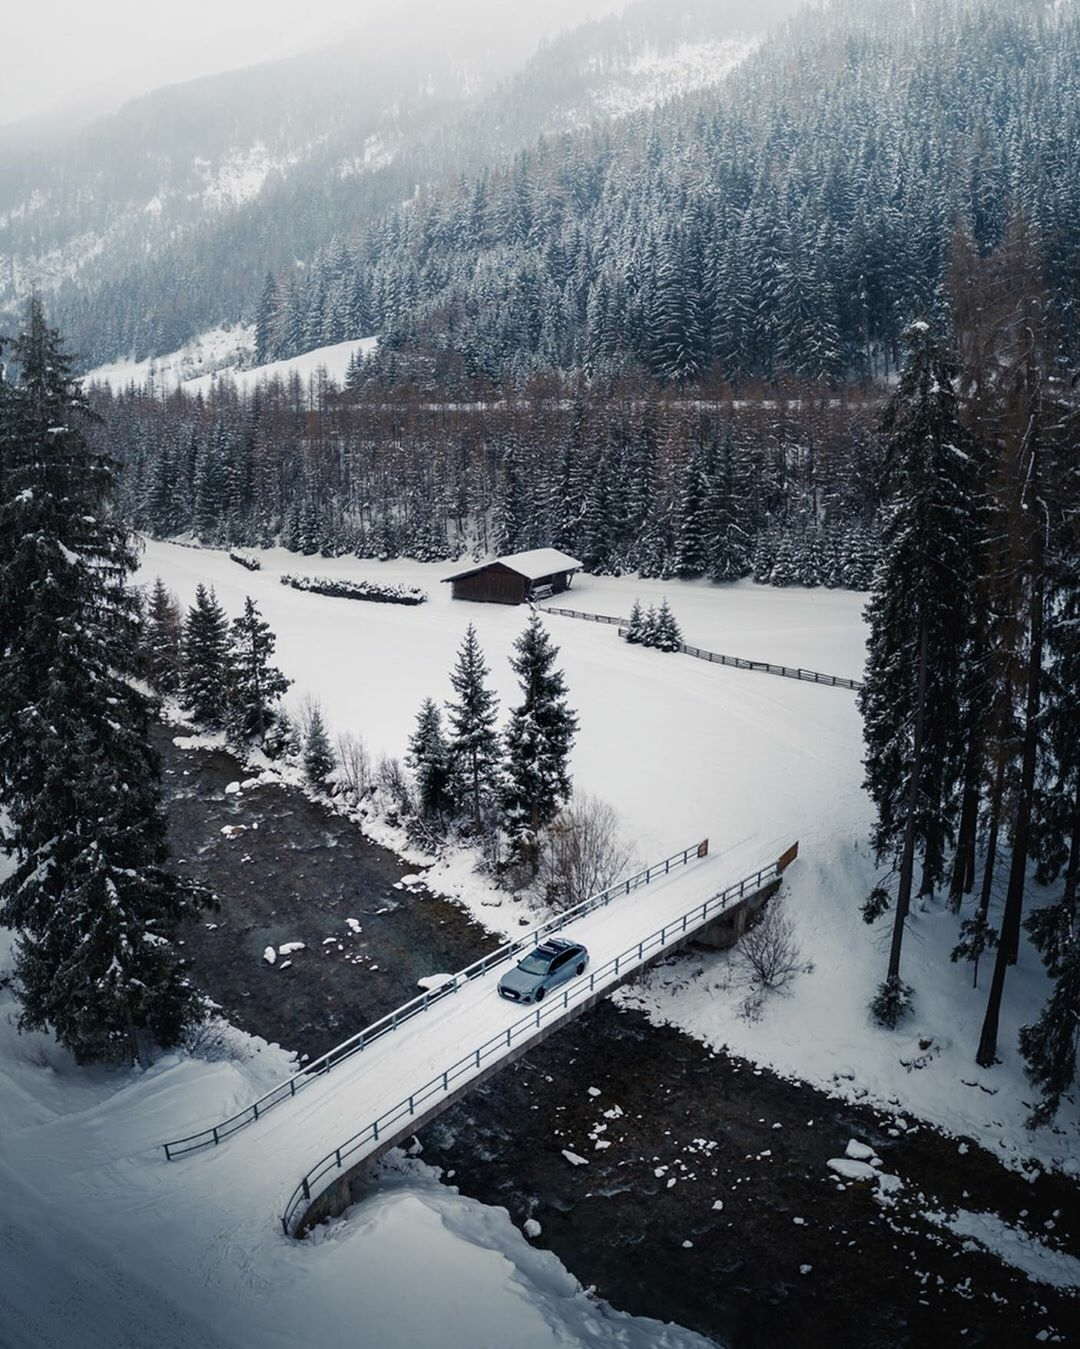 winter drive in an RS6